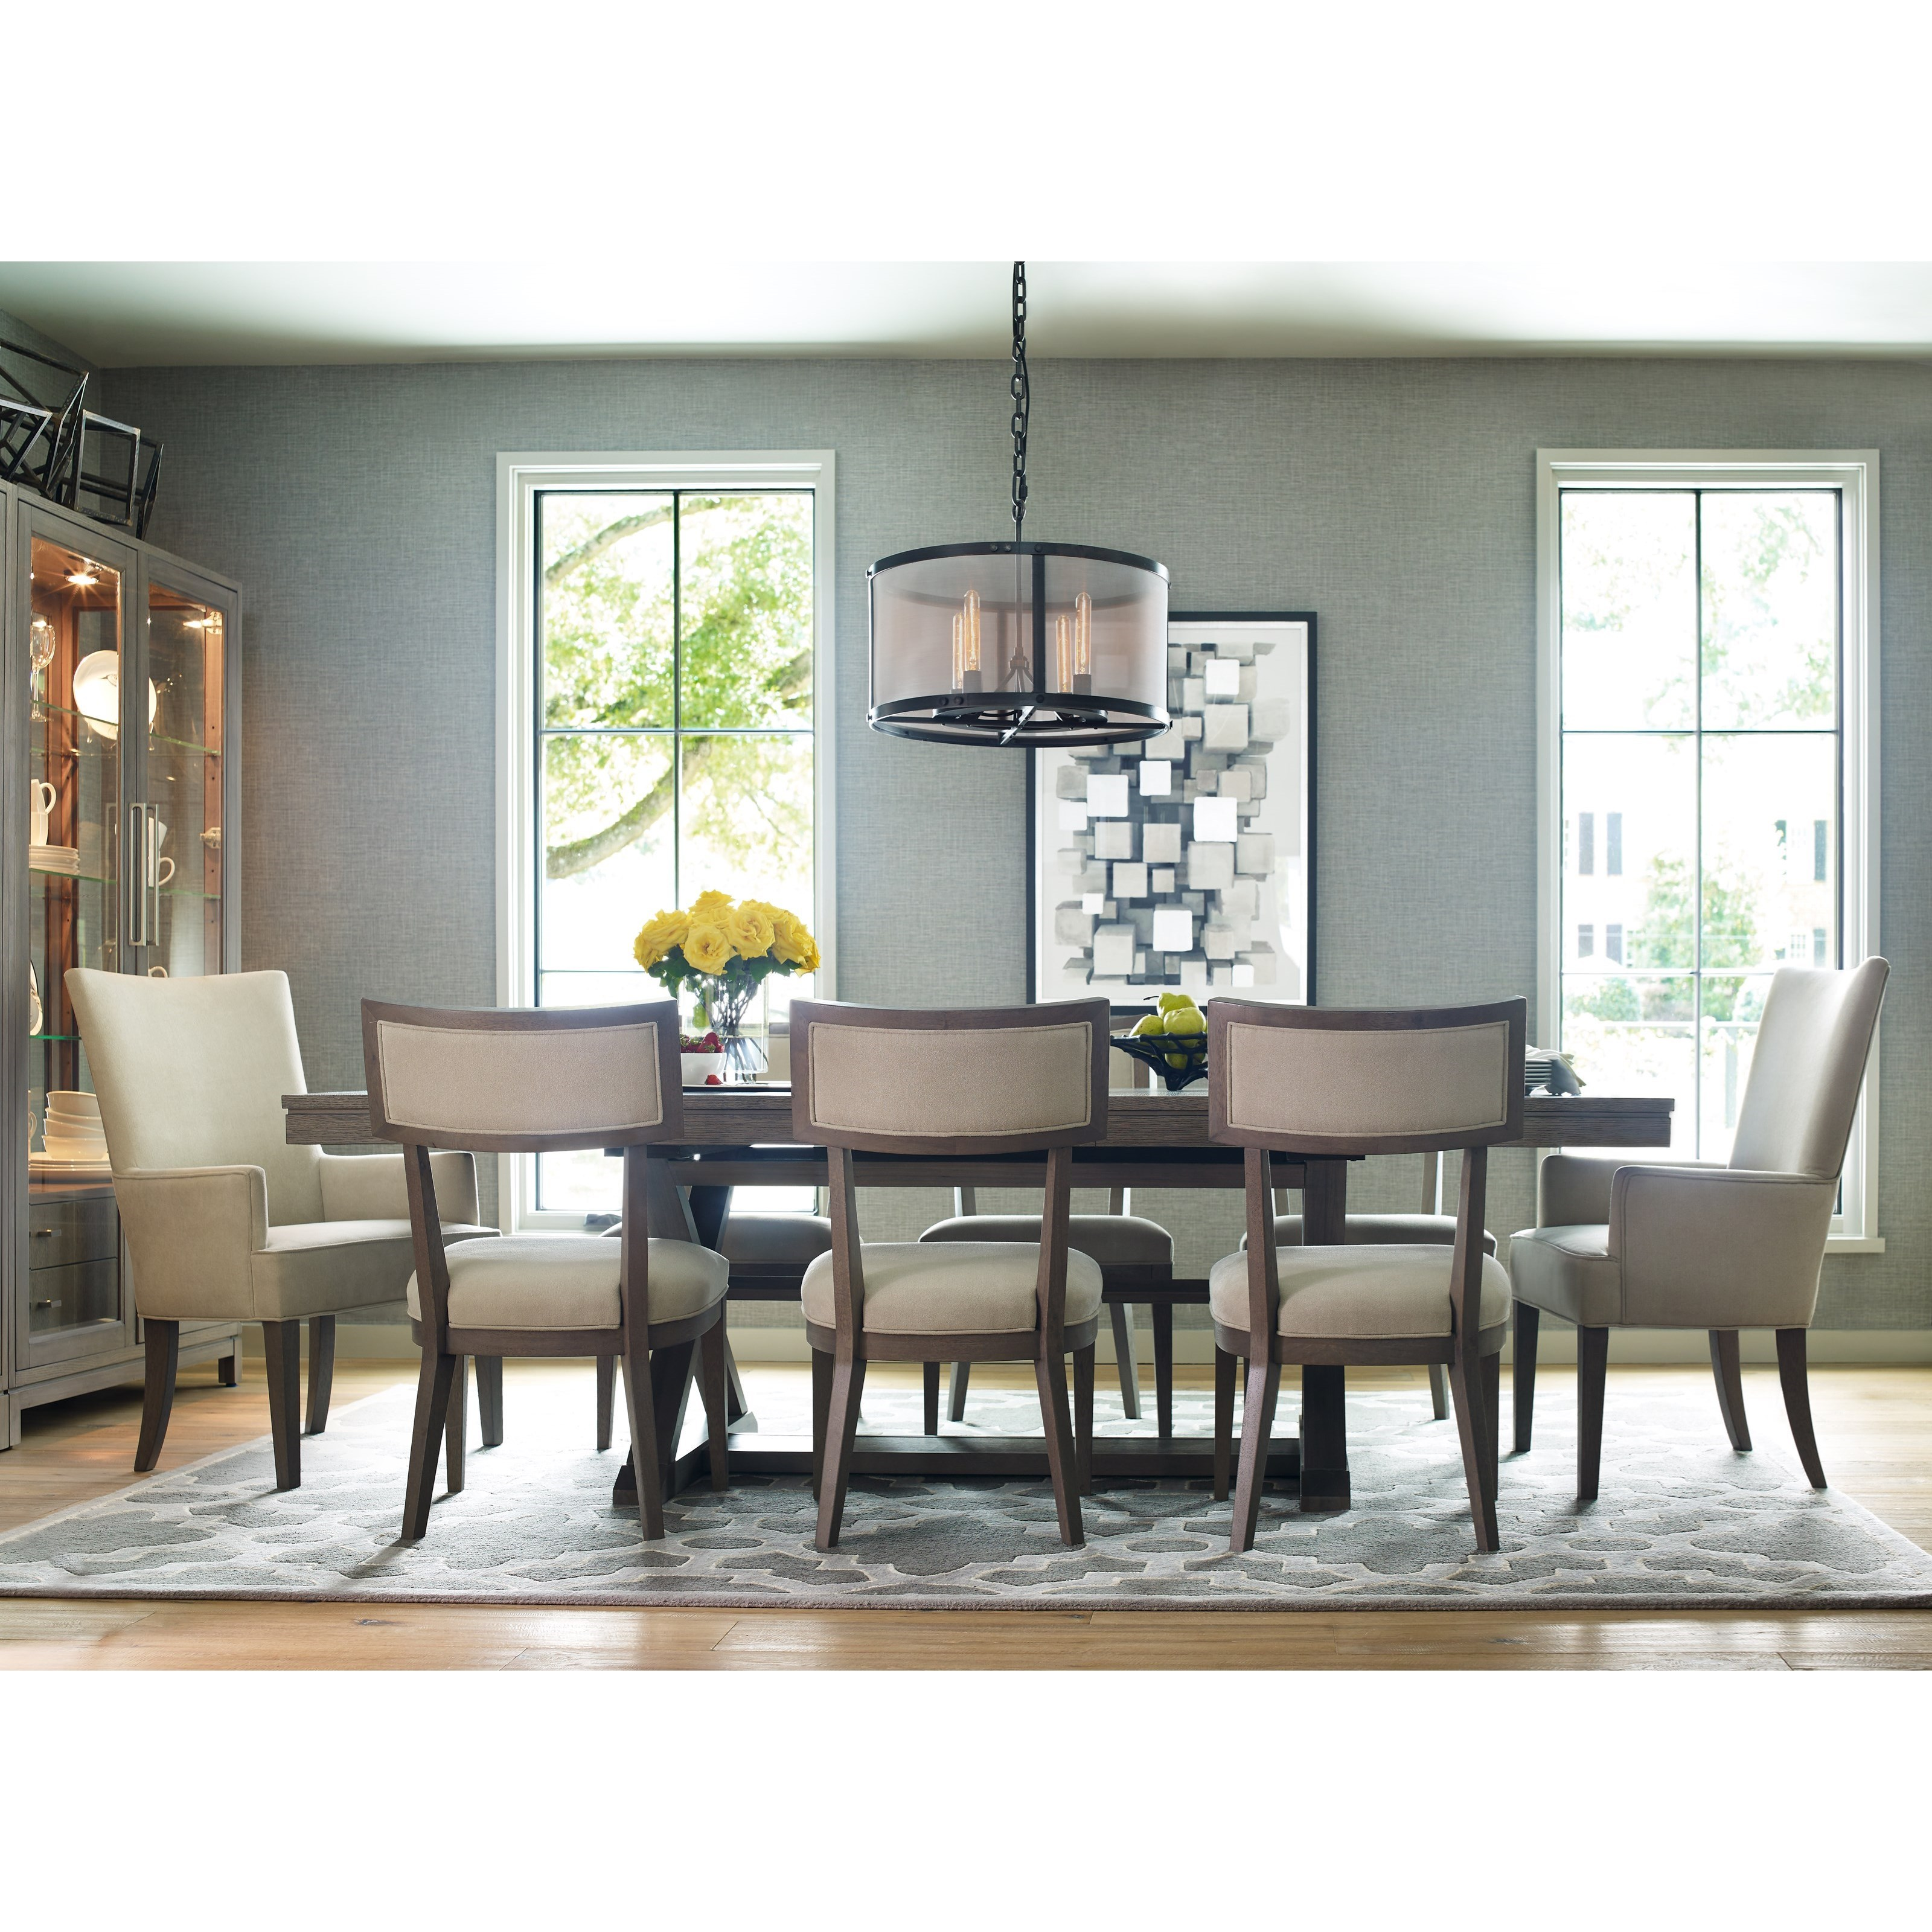 Highline Dining Room Group by Rachael Ray Home by Legacy Classic at Powell's Furniture and Mattress